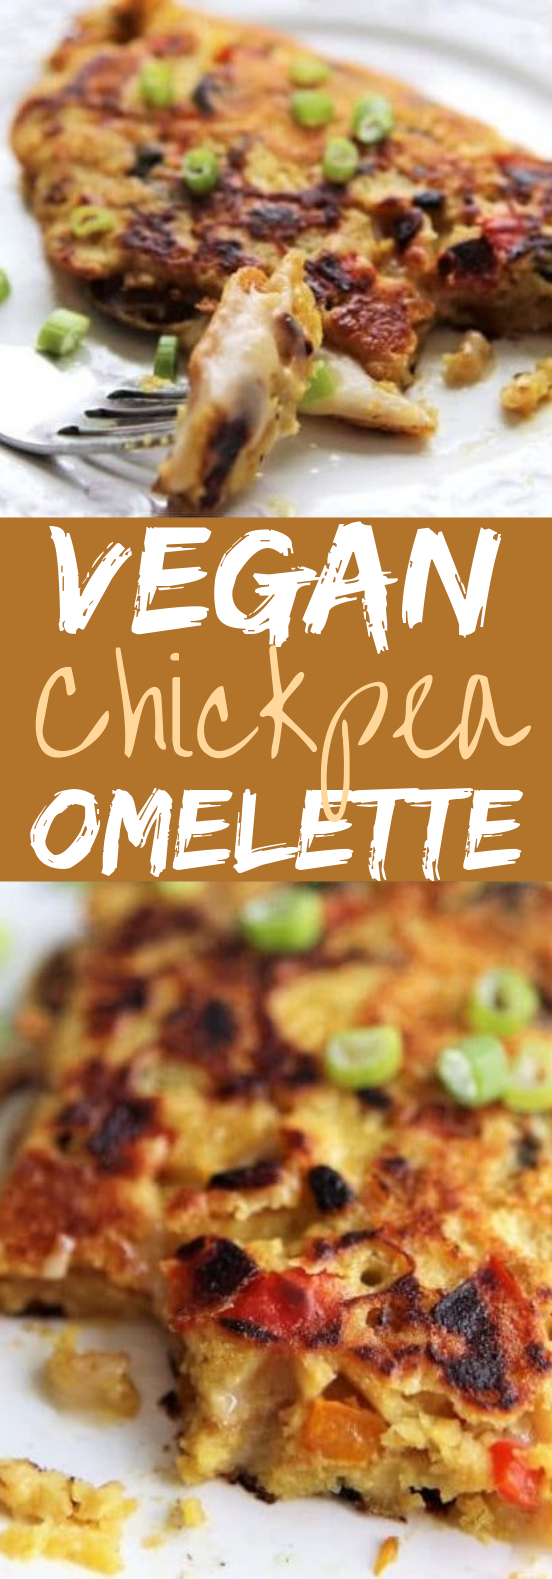 Vegan Chickpea Omelette #breakfast #vegan